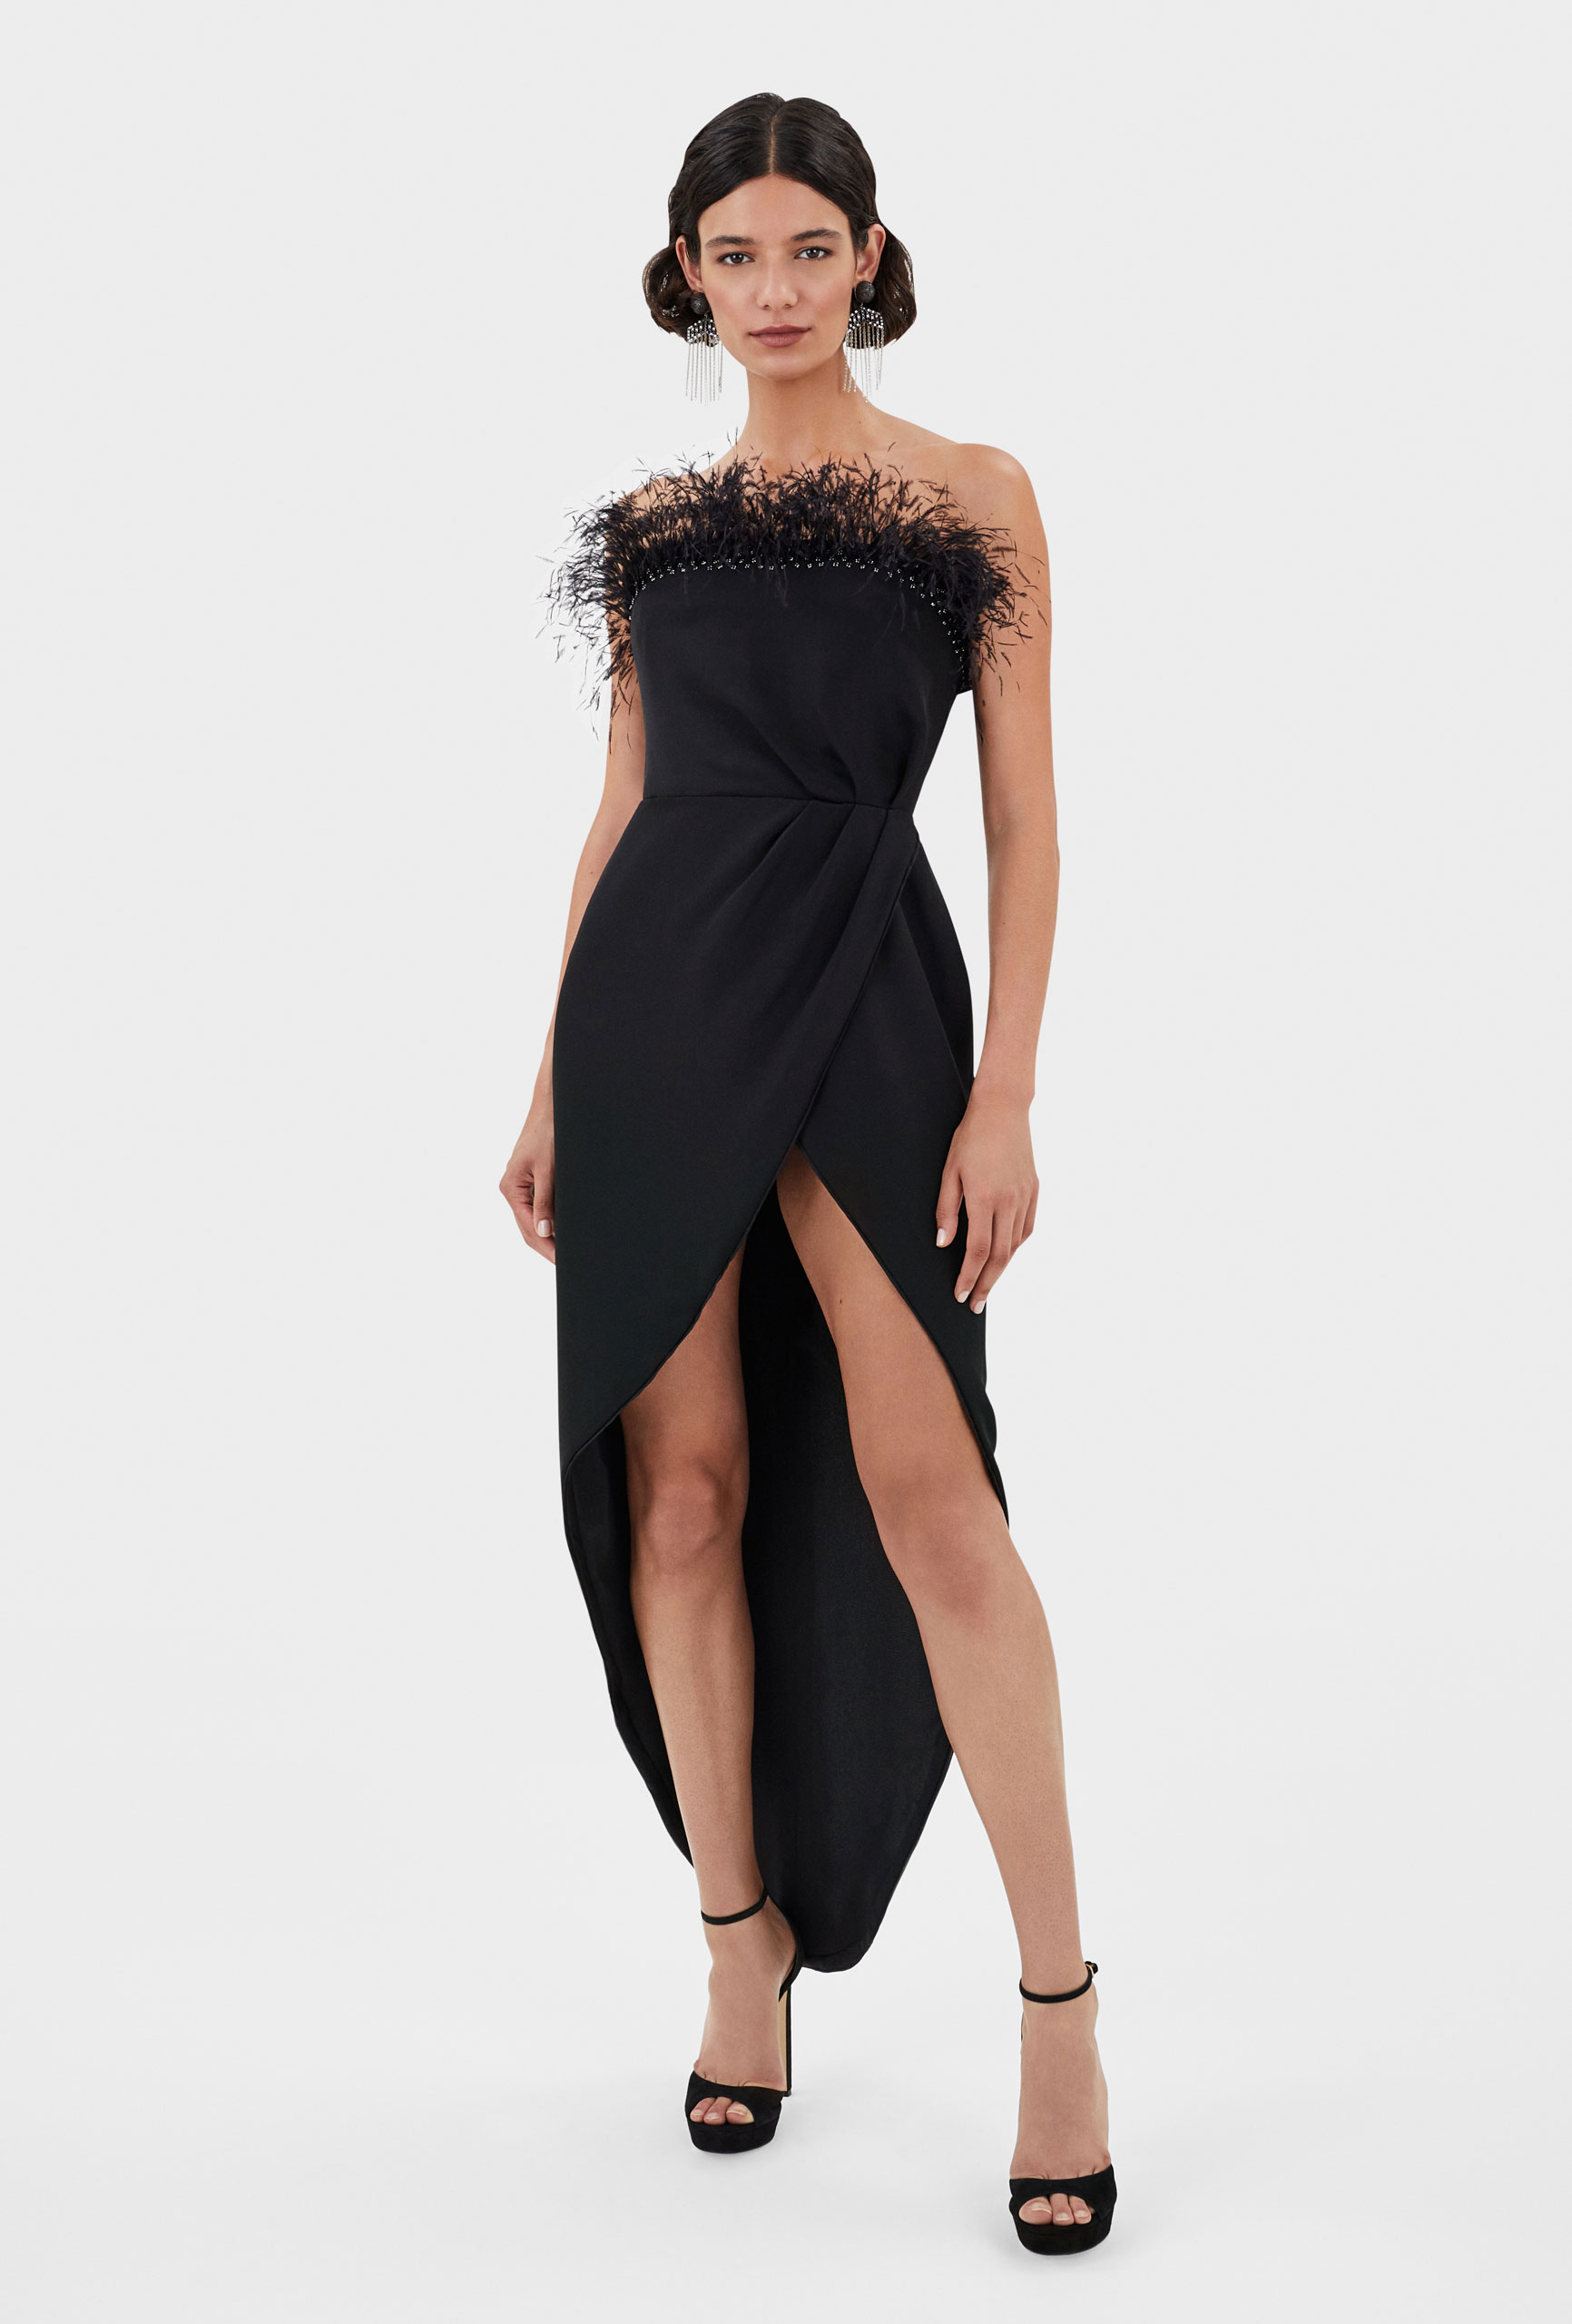 Thom Laurence Dress, Black Ostrich plumes, Artful Draping Hand embellishment, Made in London